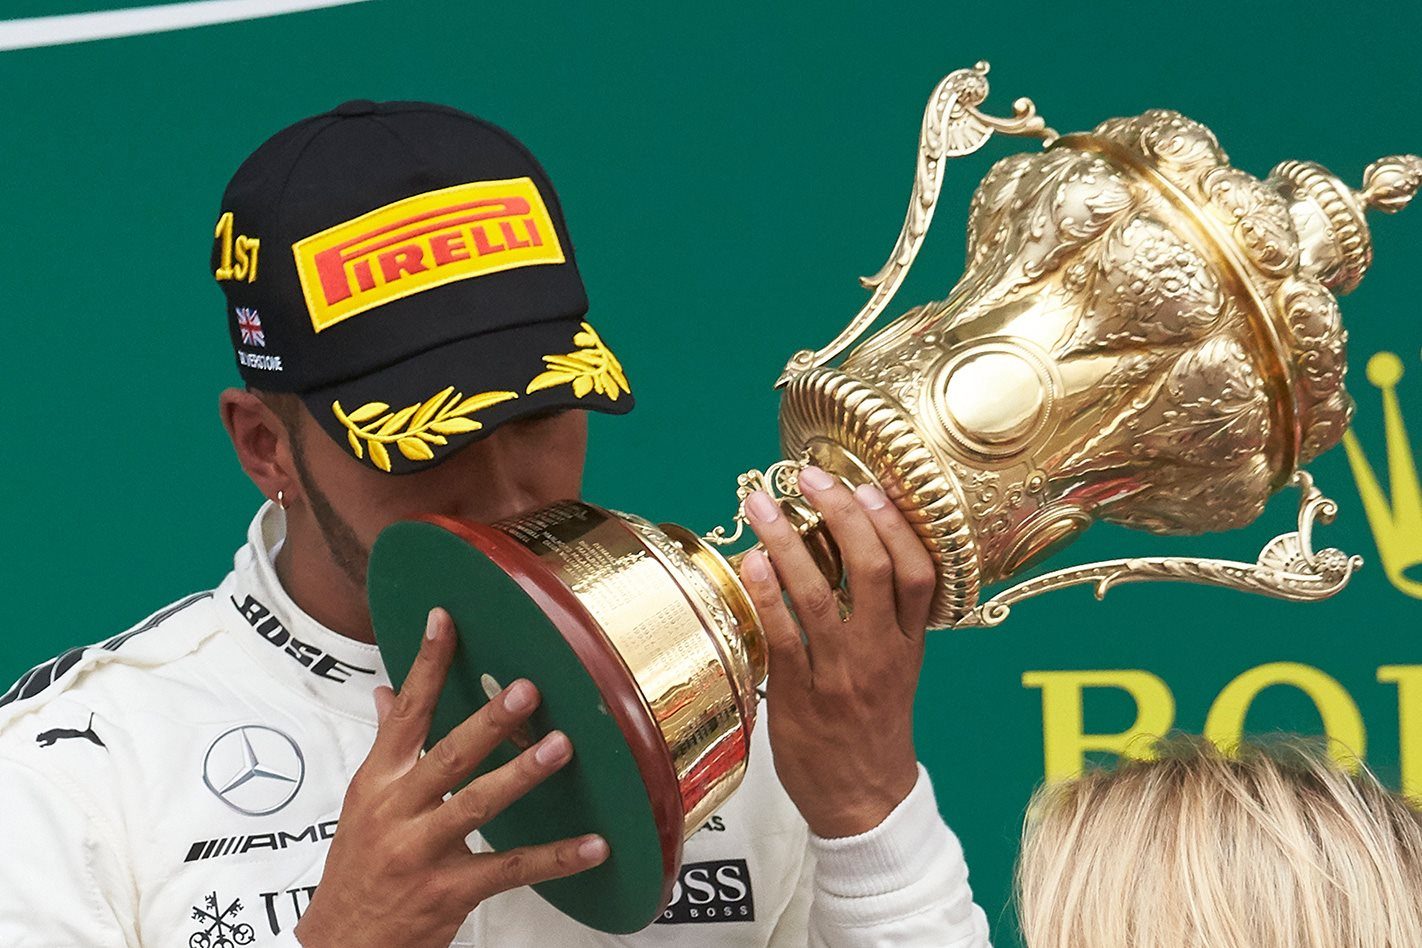 Lewis Hamilton dominates 2017 British Grand Prix